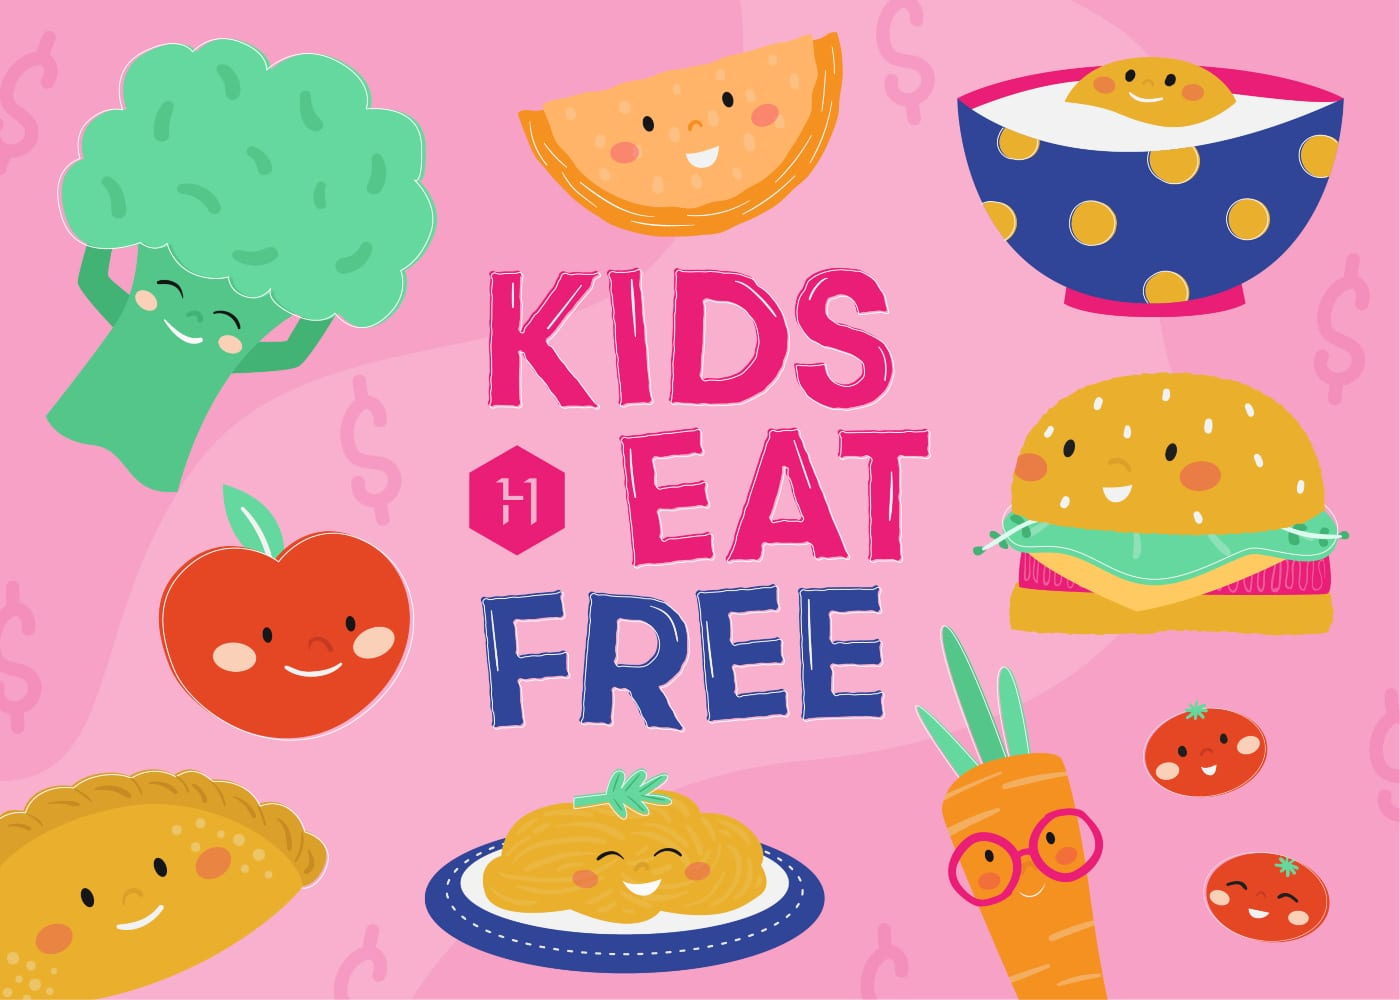 Kids eat free: our pick of the best family-friendly restaurant deals in Singapore